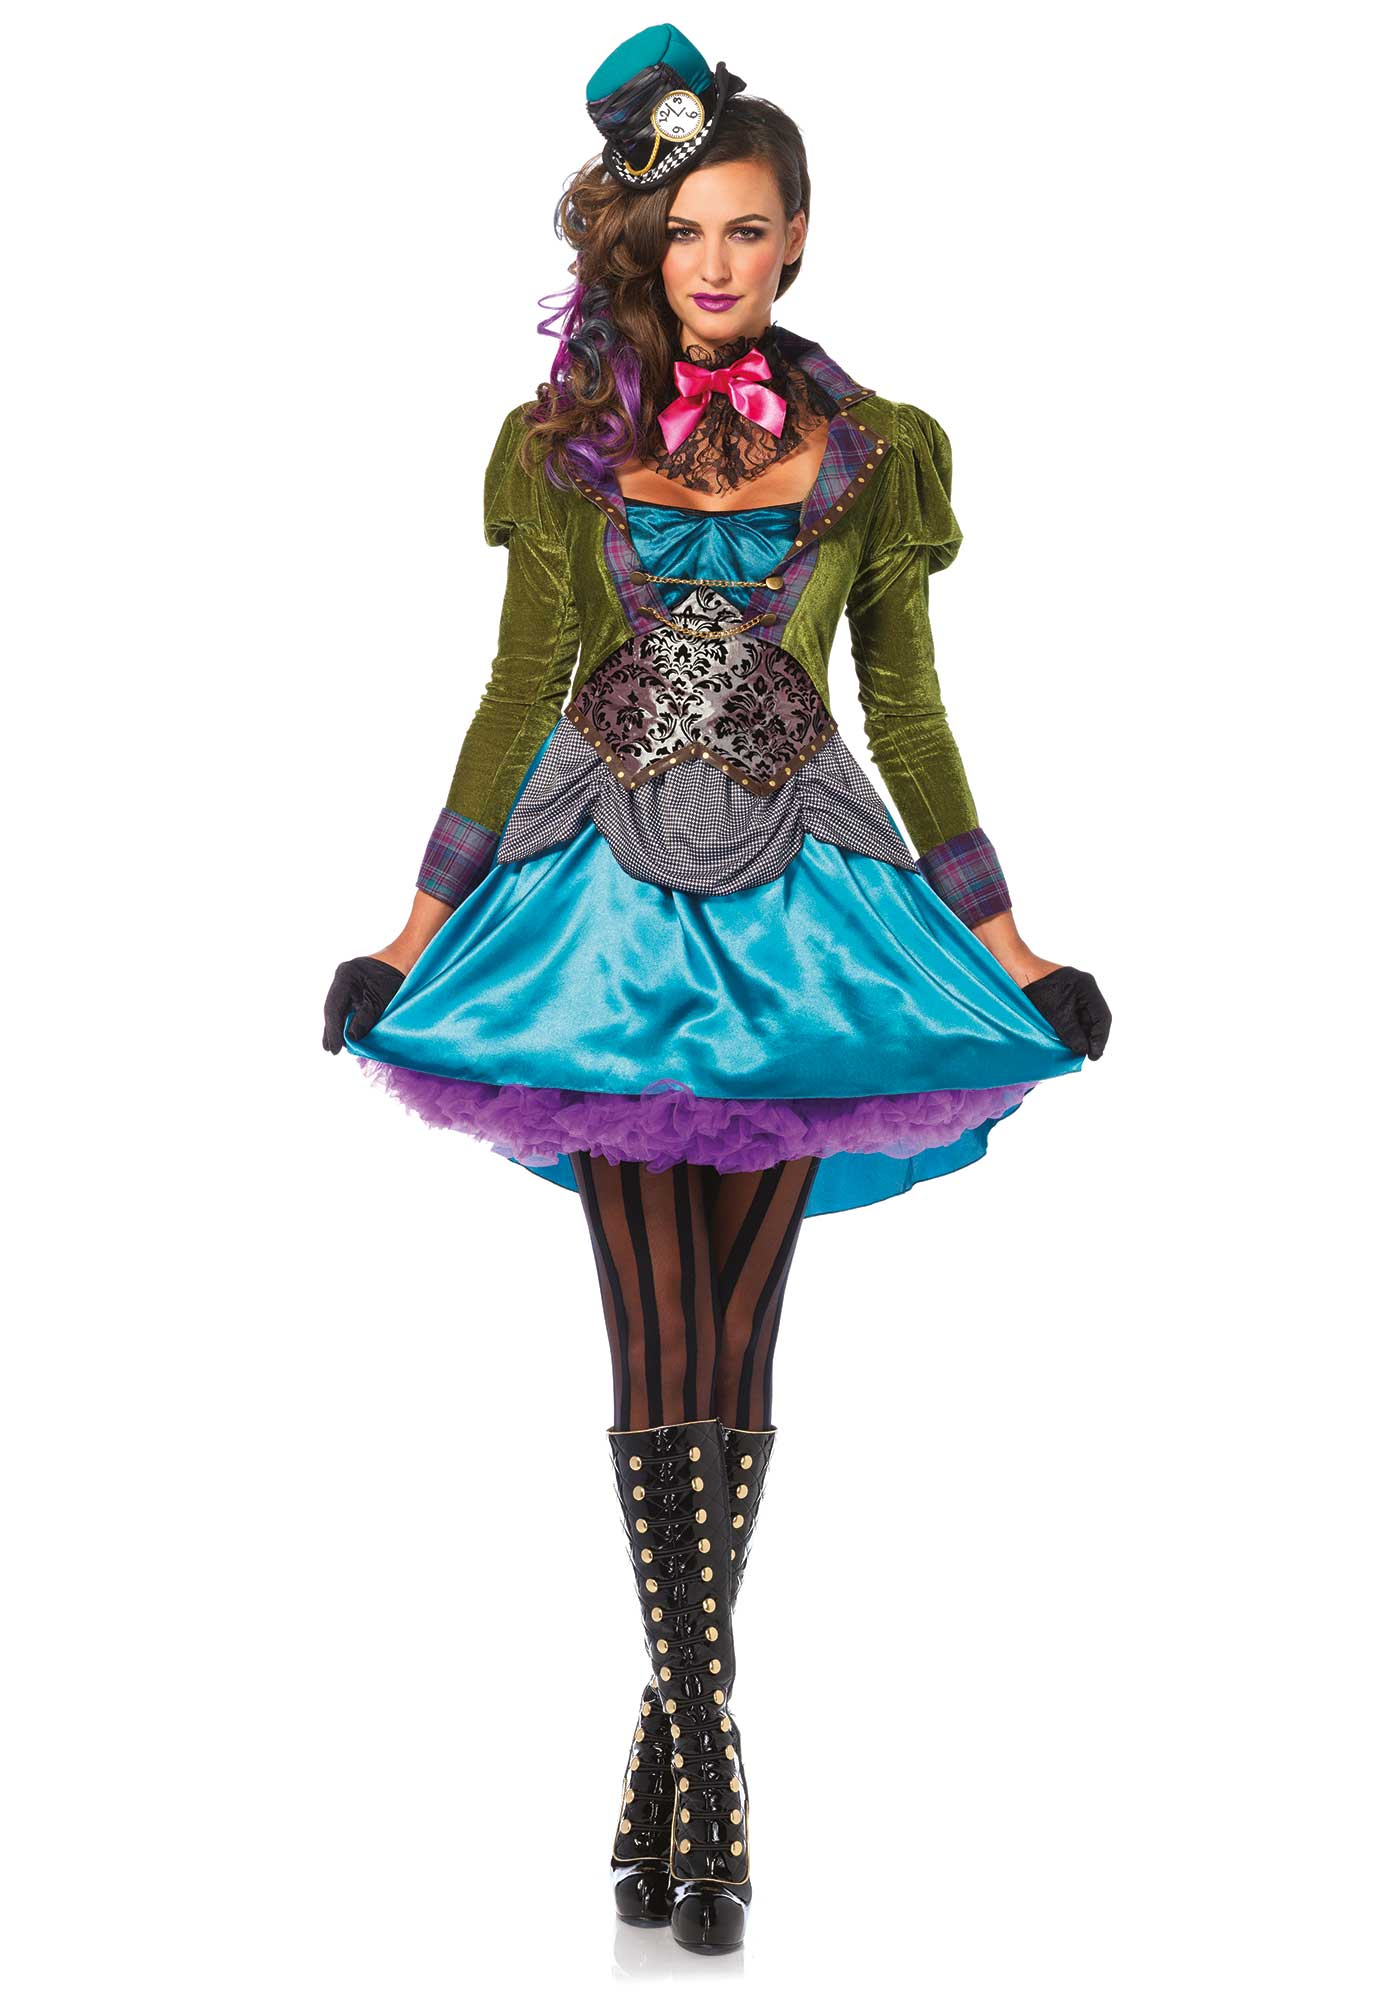 <p>Mad Hatter from Wonderland never looked this good! This luxurious costume has lots of details. This 3PC fairy-tale costume is a luxurious version of the Mad Hatter character. This costume set includes a high/low velvet and satin coat dress with houndstooth pickings and brocade panel details, a lace ruffle neck piece, and a mini clock top hat.</p>  <p>The gloves and pantyhose are not included.</p>  <p>The length of size Small, measured from the shoulder is 82 cm/ 32 inch at the front and 105 cm/ 41 inch at the backside. The model has a length of 178 cm/ 70 inch and is wearing a size S.</p>